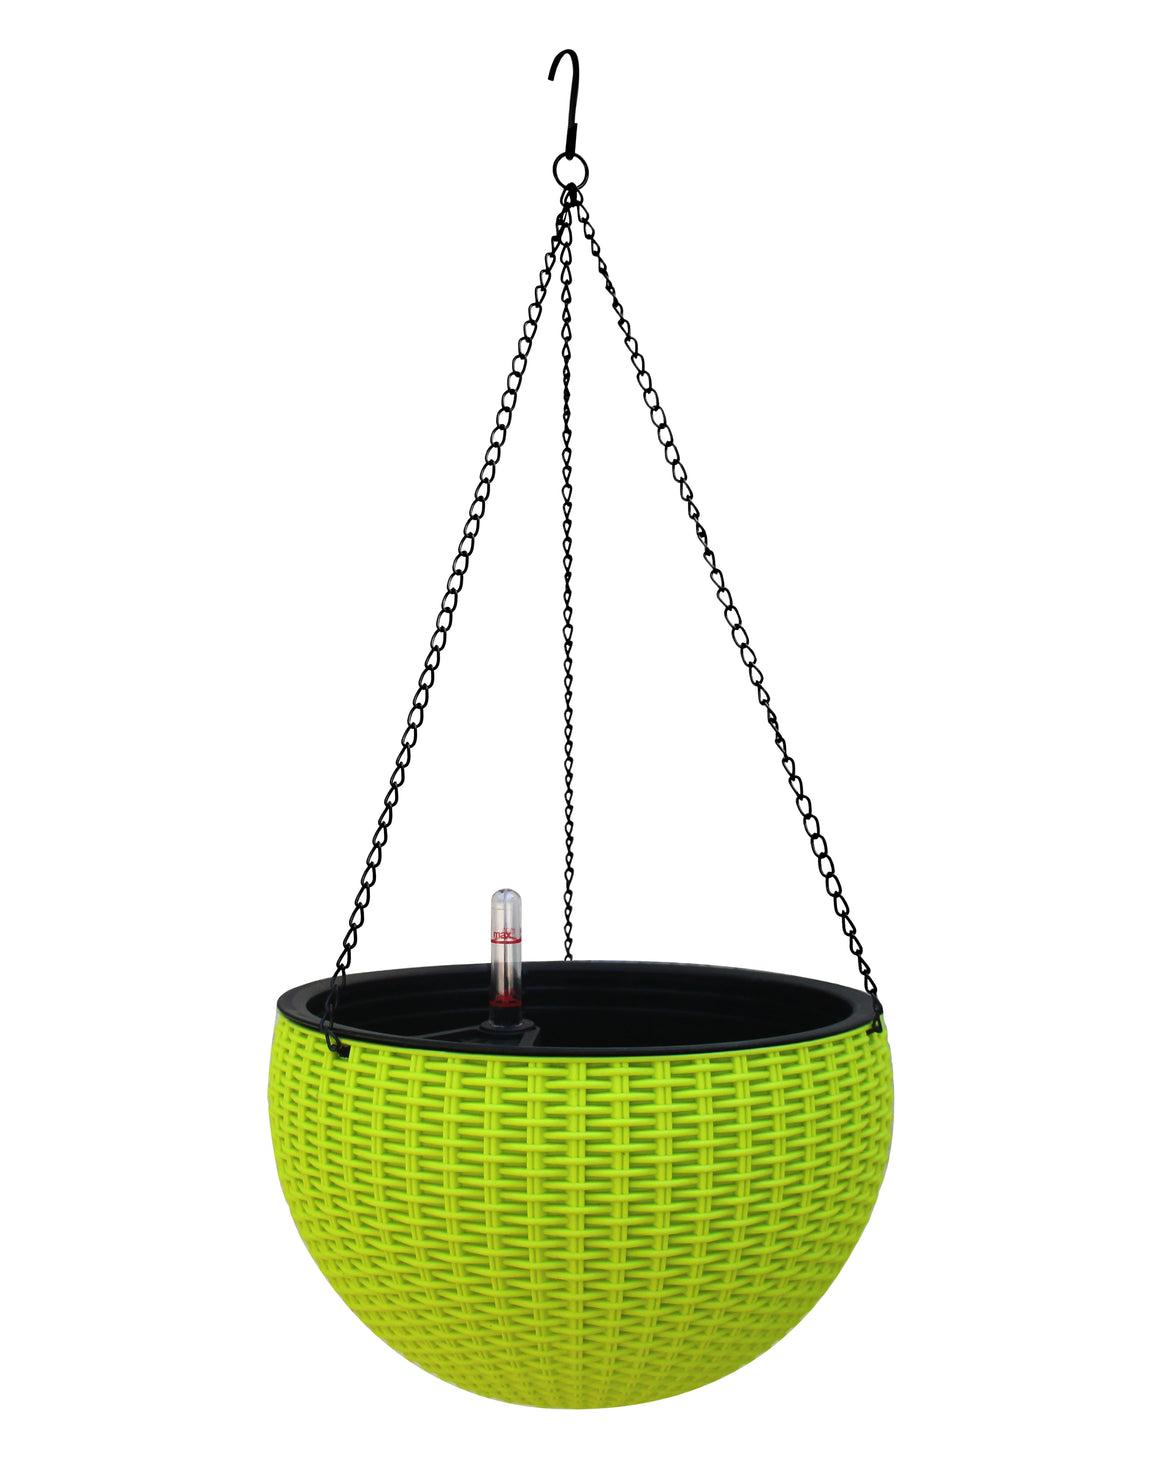 TABOR TOOLS Self-Watering Hanging Planter with Water Level Indicator Gauge (Green)